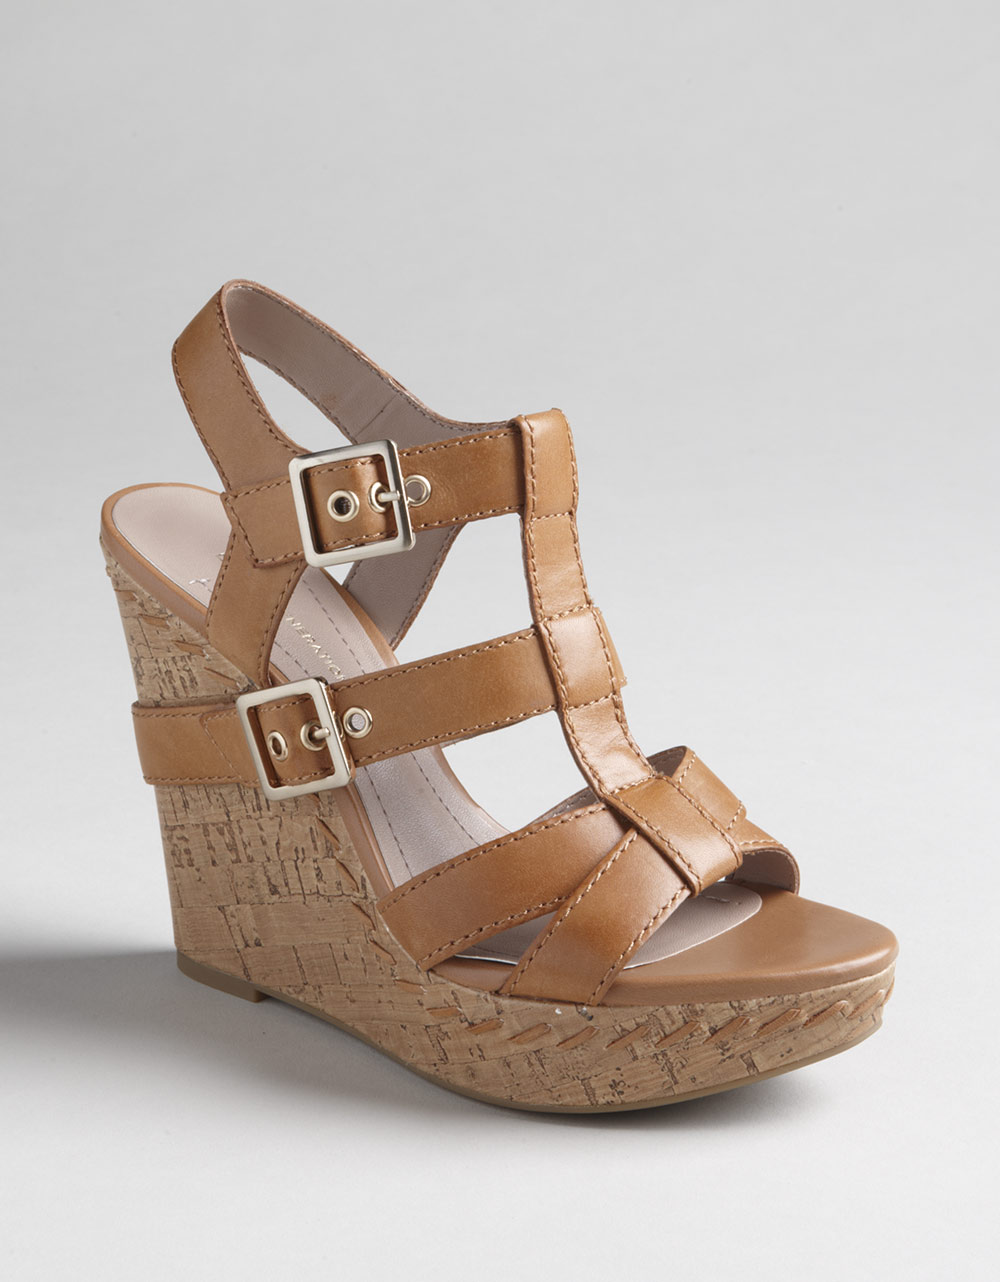 Bcbgeneration Imania Strappy Cork Wedge Sandals In Brown